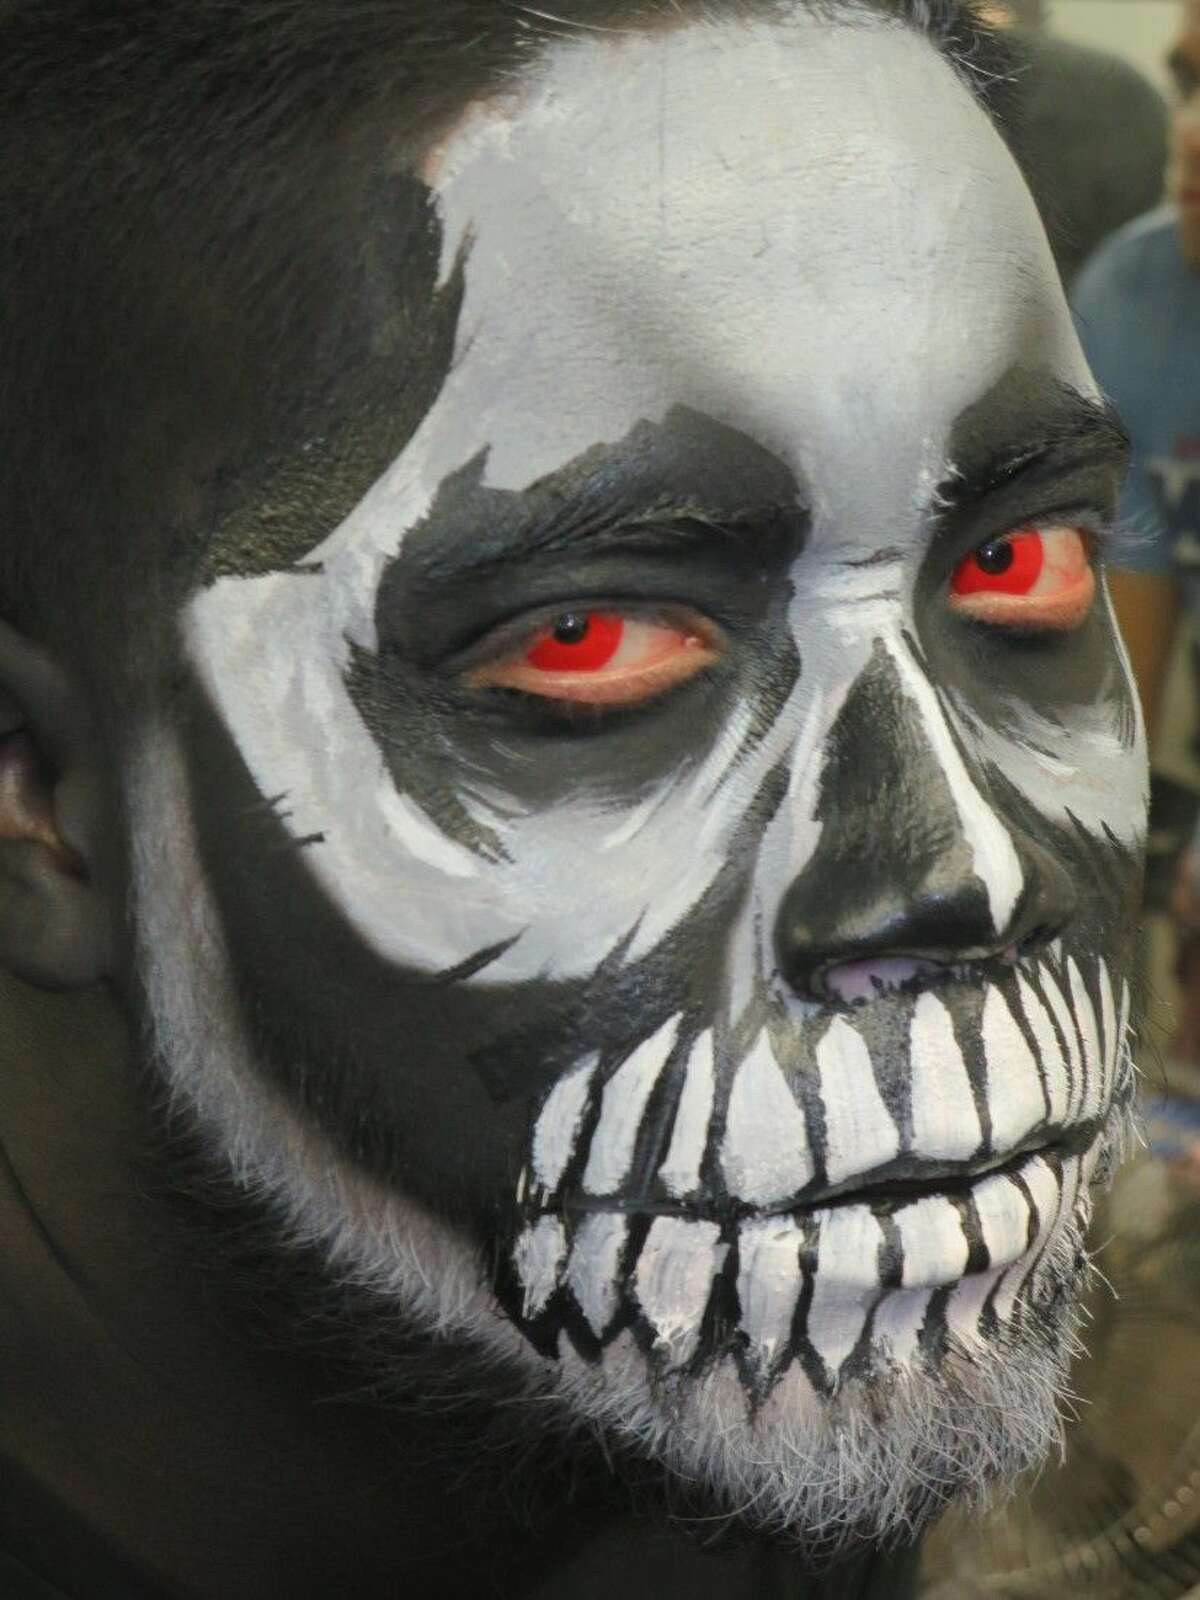 Houston's most terrifying haunt kicks off its 26th Halloween season on Friday, Sept. 19 with new features for fright fans.